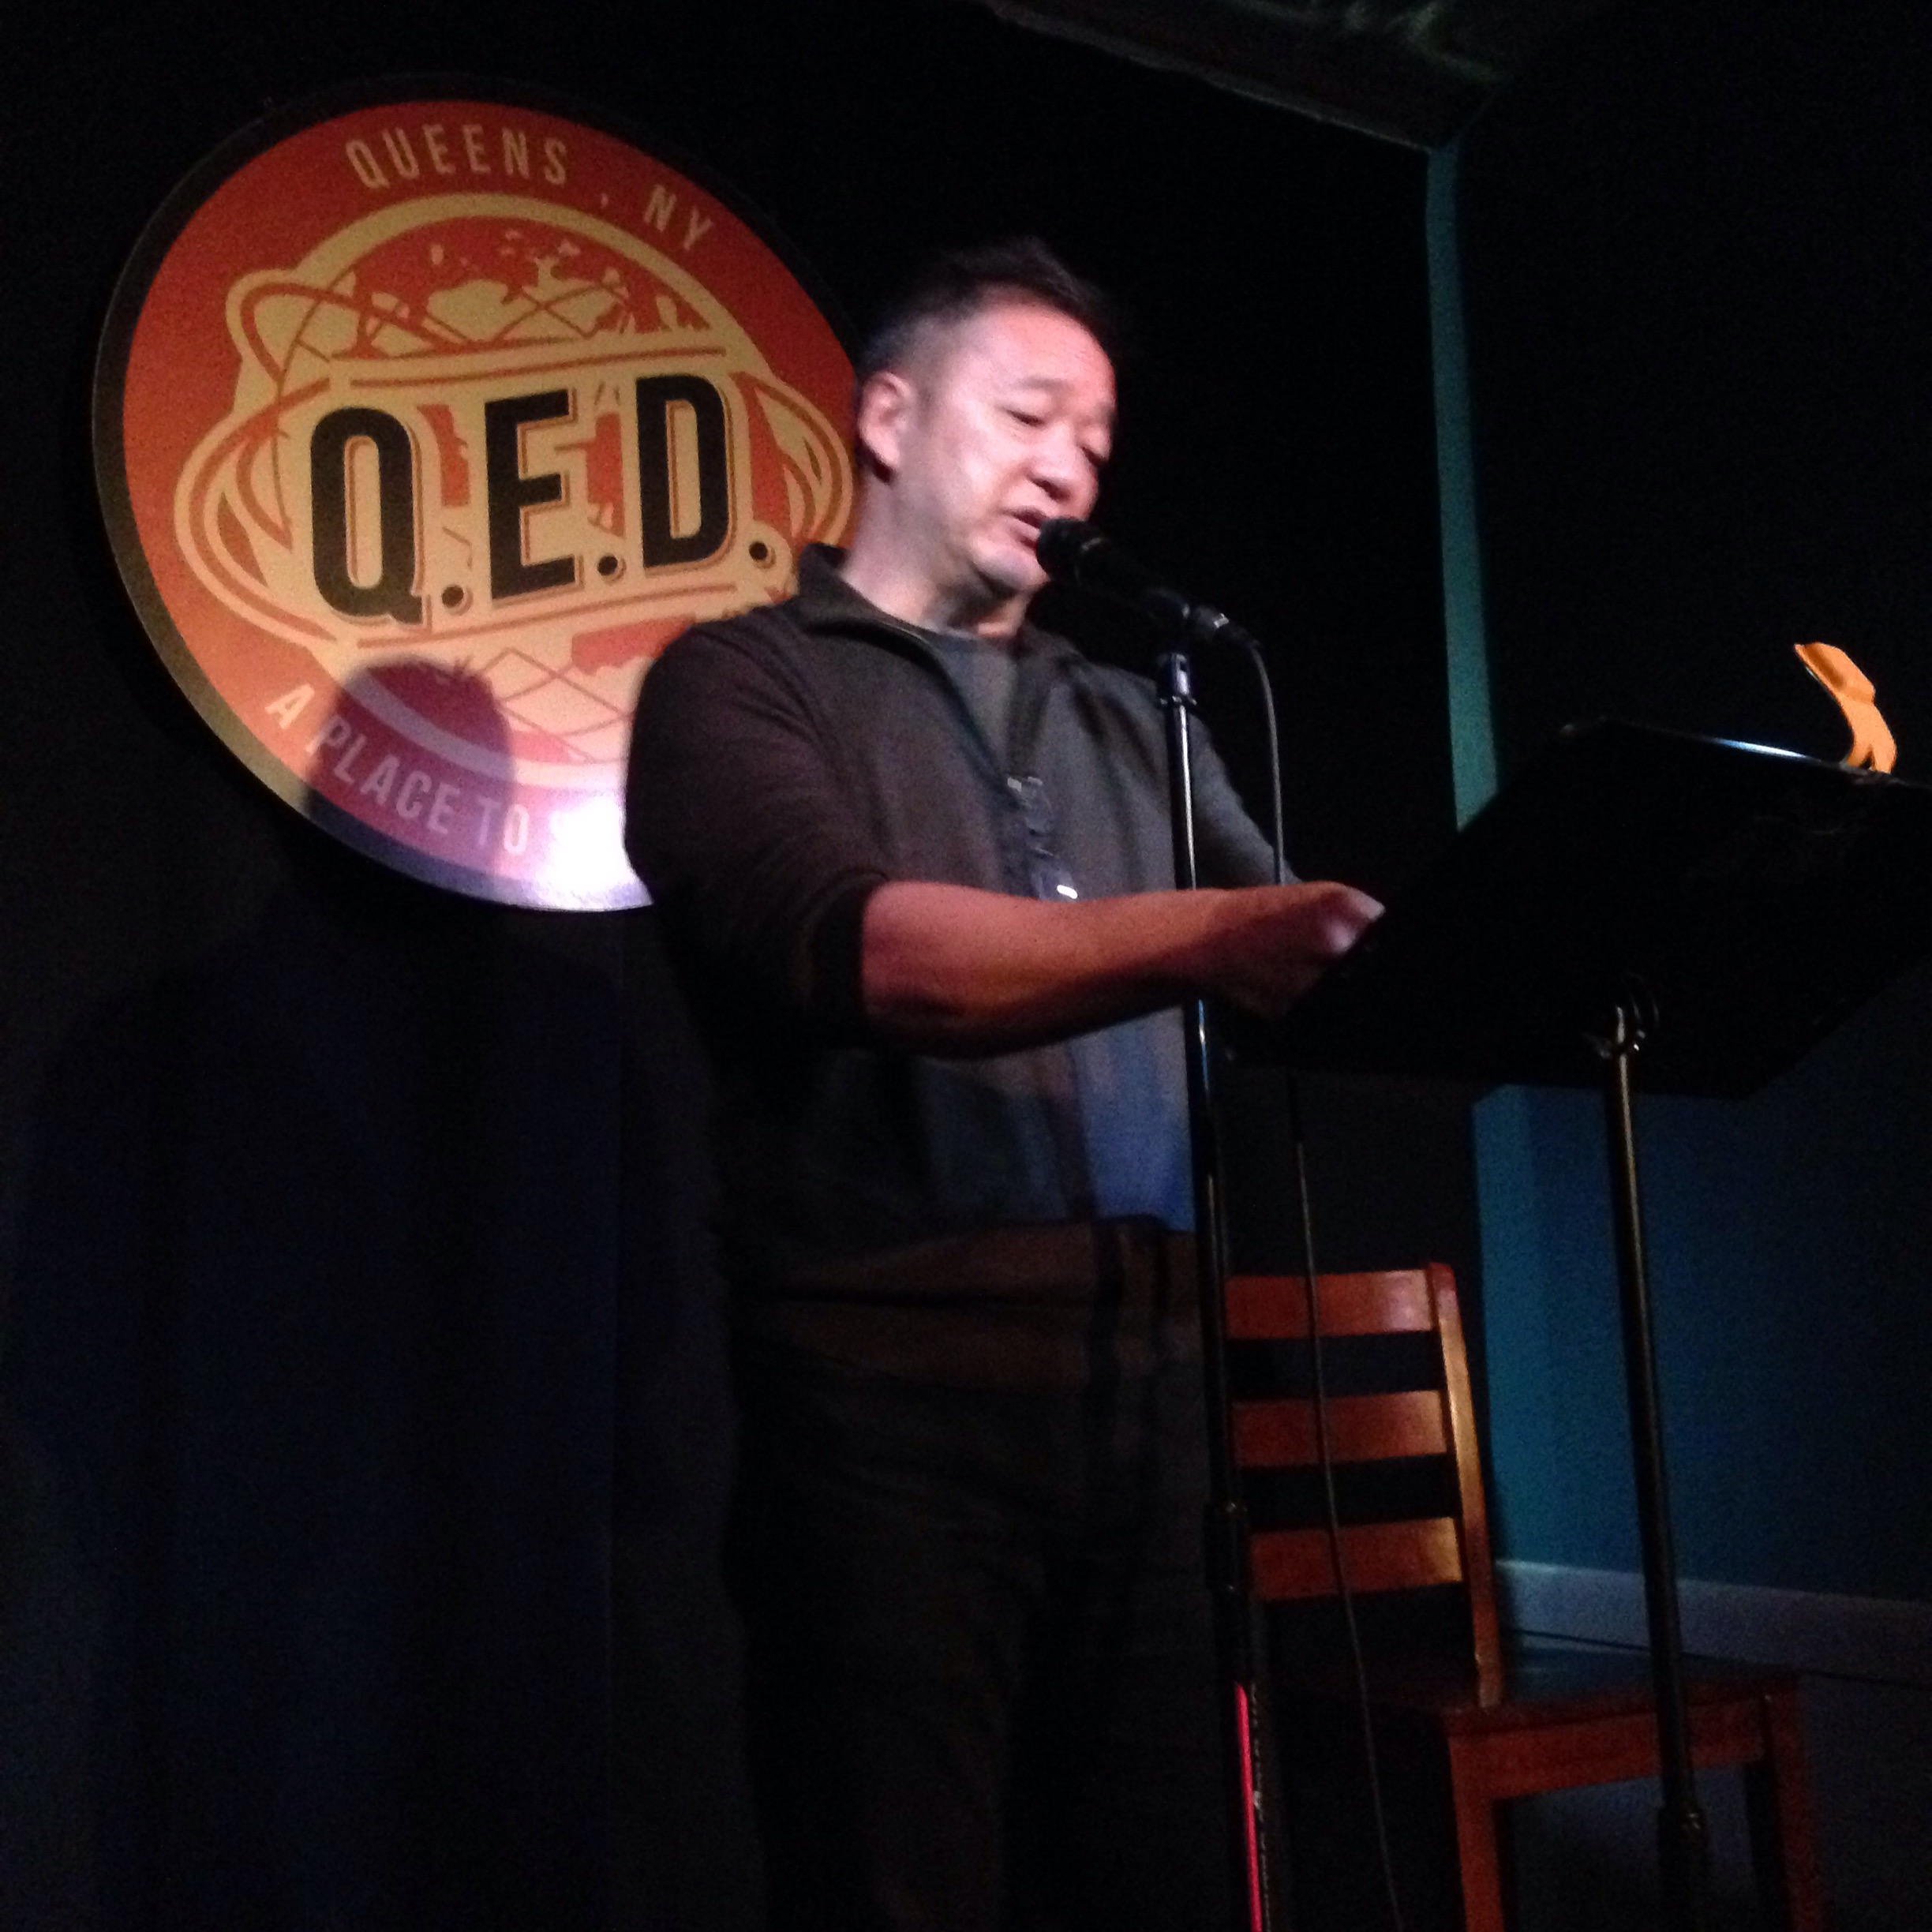 Malcolm Chang reads at Line Break #1 at Q.E.D. in Astoria, Queens, March 5, 2016